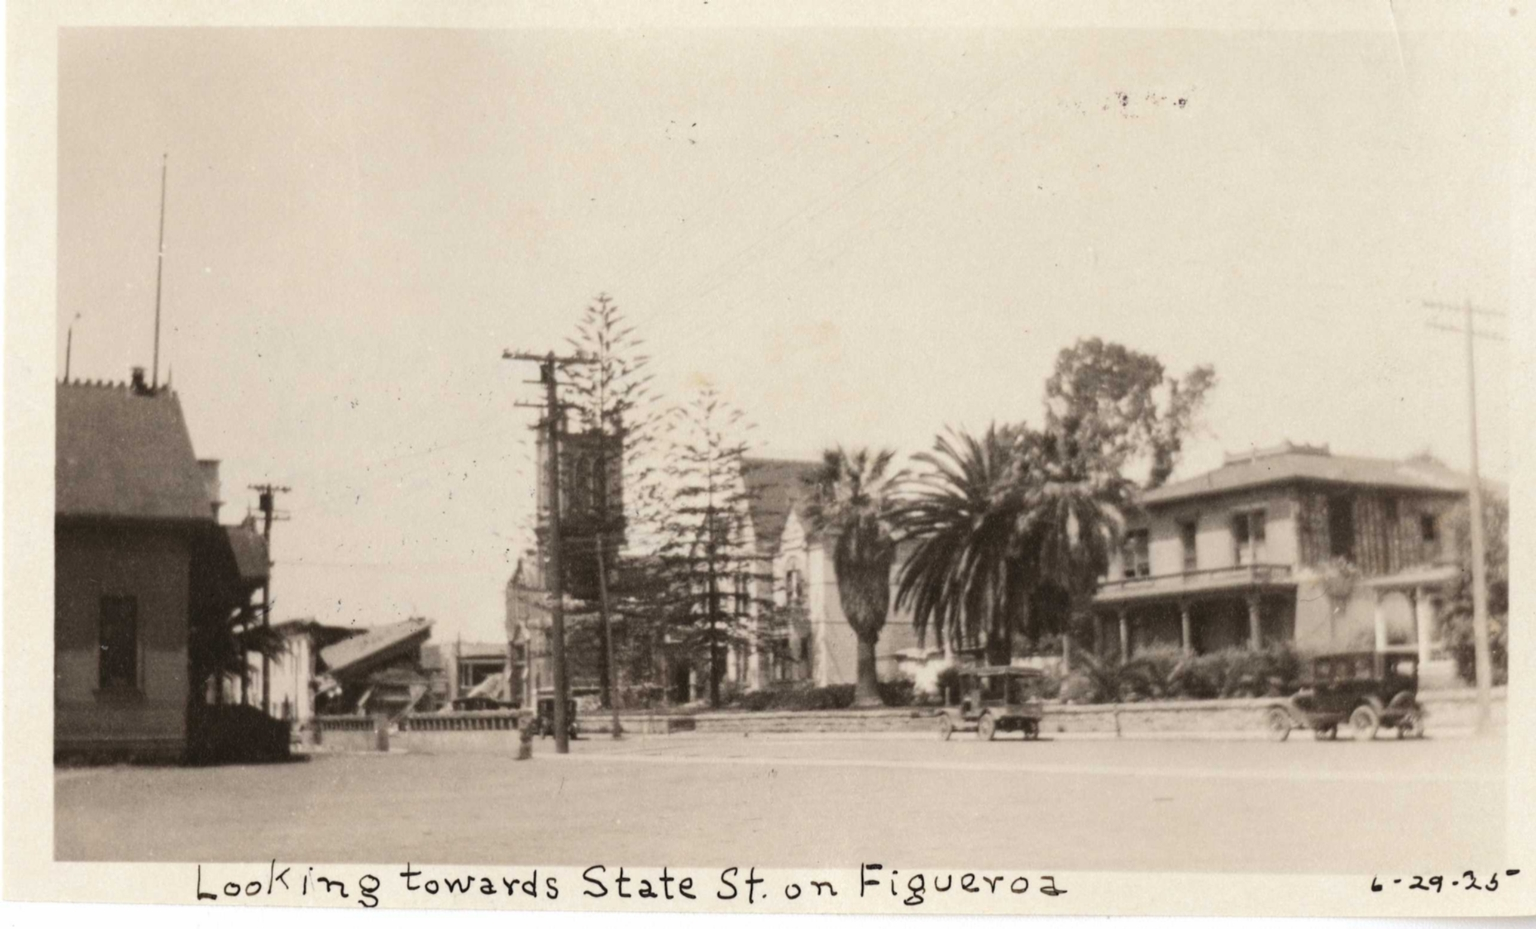 Santa Barbara 1925 Earthquake damage - Looking Towards State St.